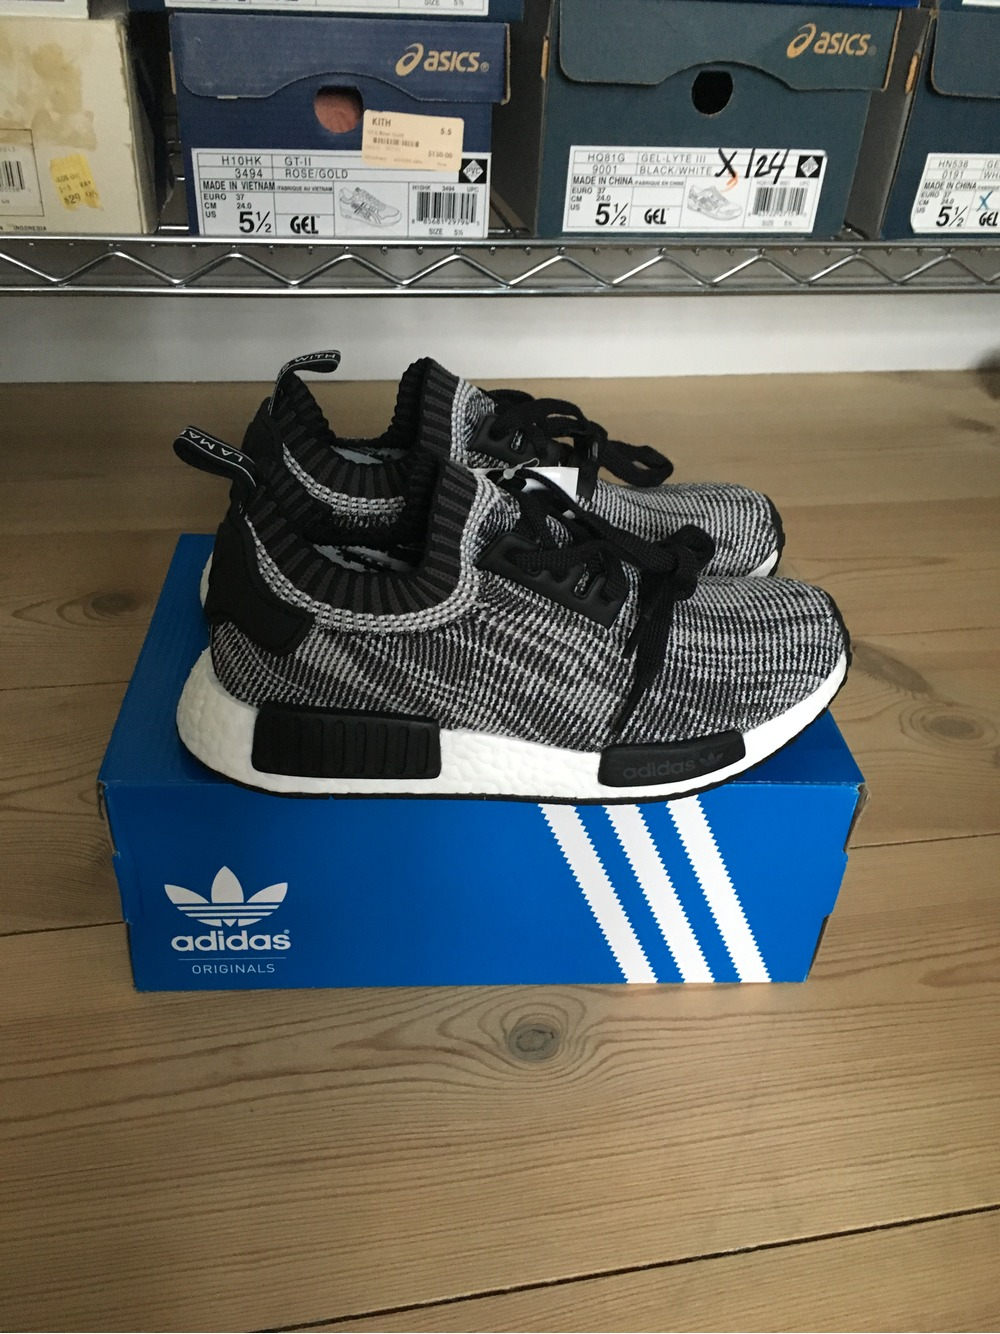 adidas nmd r1 nomad boost core black grey red glitch camo